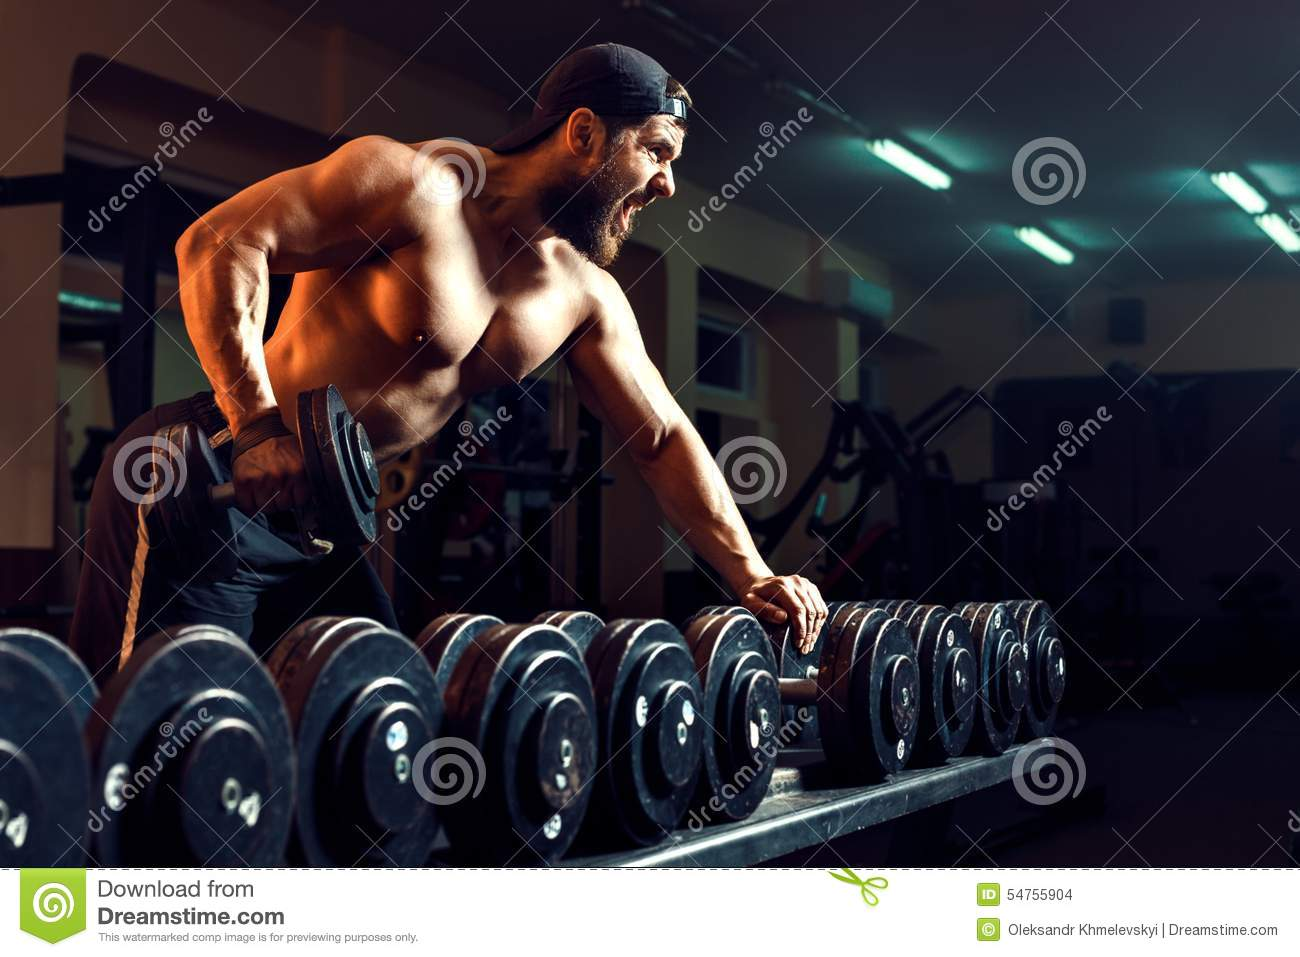 Download Muscular Male Bodybuilder Working Out In Gym Stock Photo - Image of male, power: 54755904